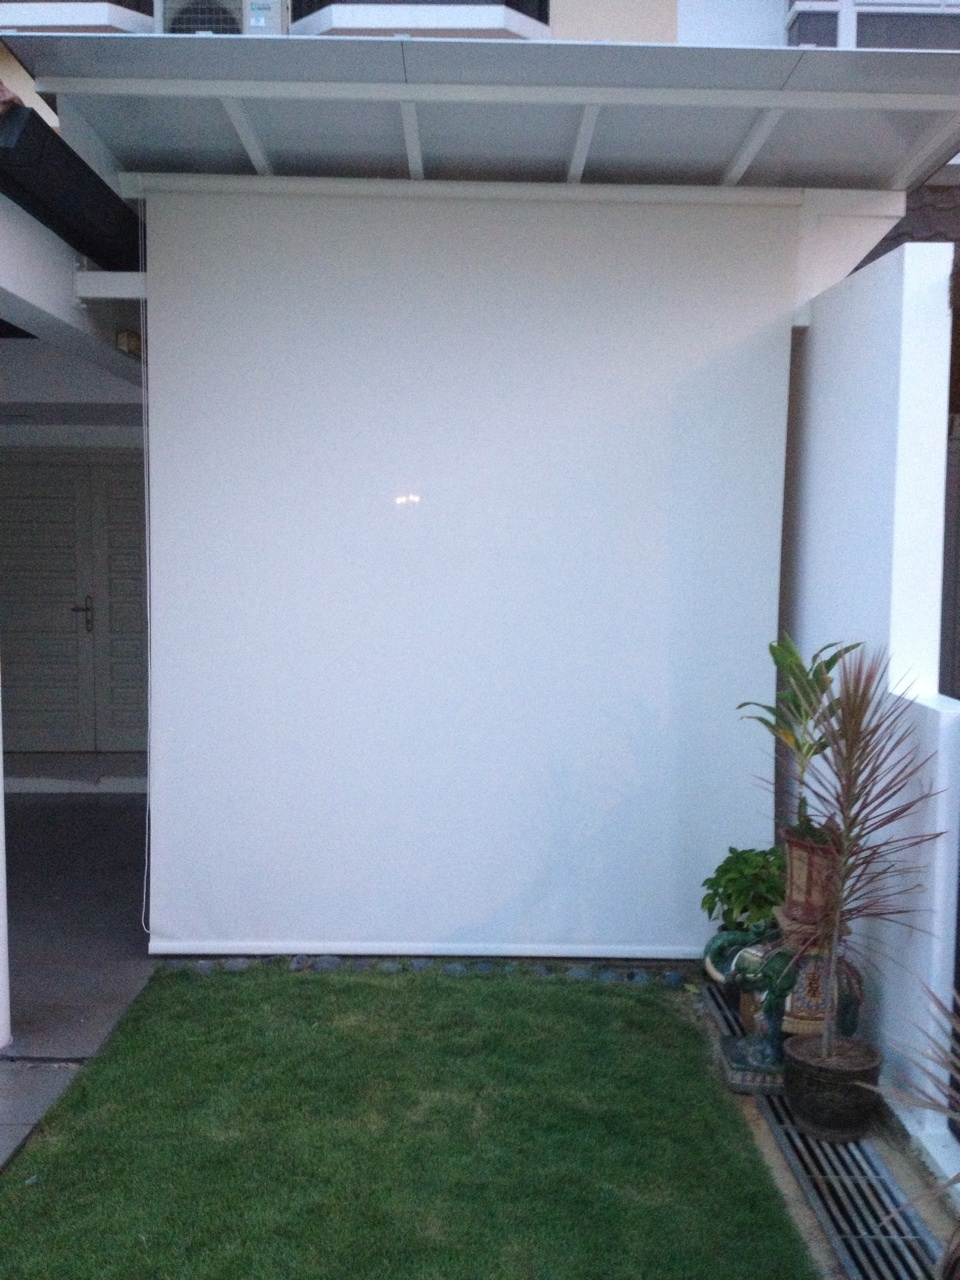 Outdoor Blinds Singapore Singapore Blindssingapore Blinds